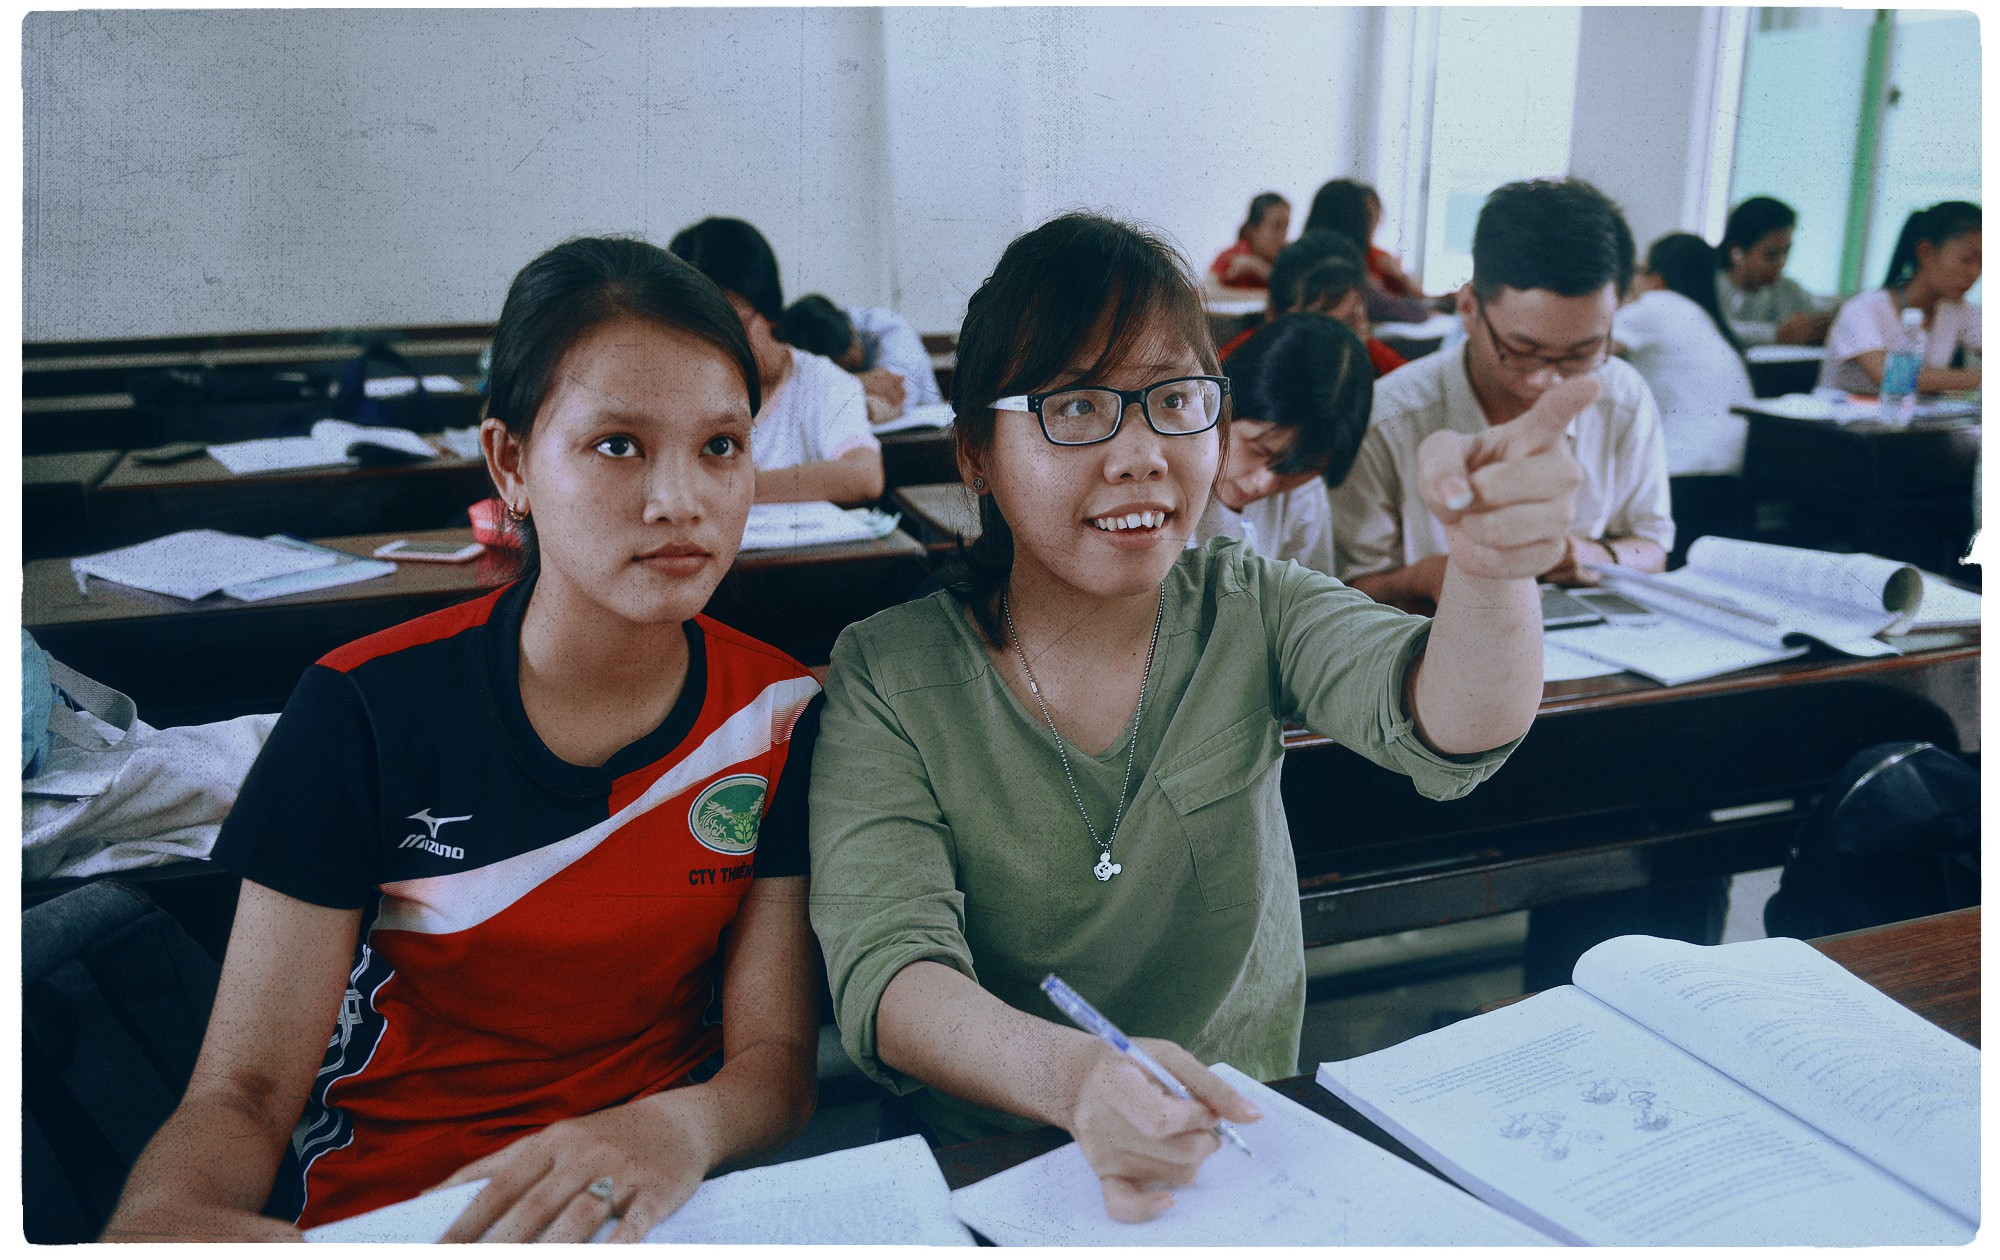 21-year-old Pham Thi Thu Thuy (right), a disabled orphan of Hoa Binh Village, got accepted to the Ho Chi Minh City University of Education. Photo: Tuoi Tre